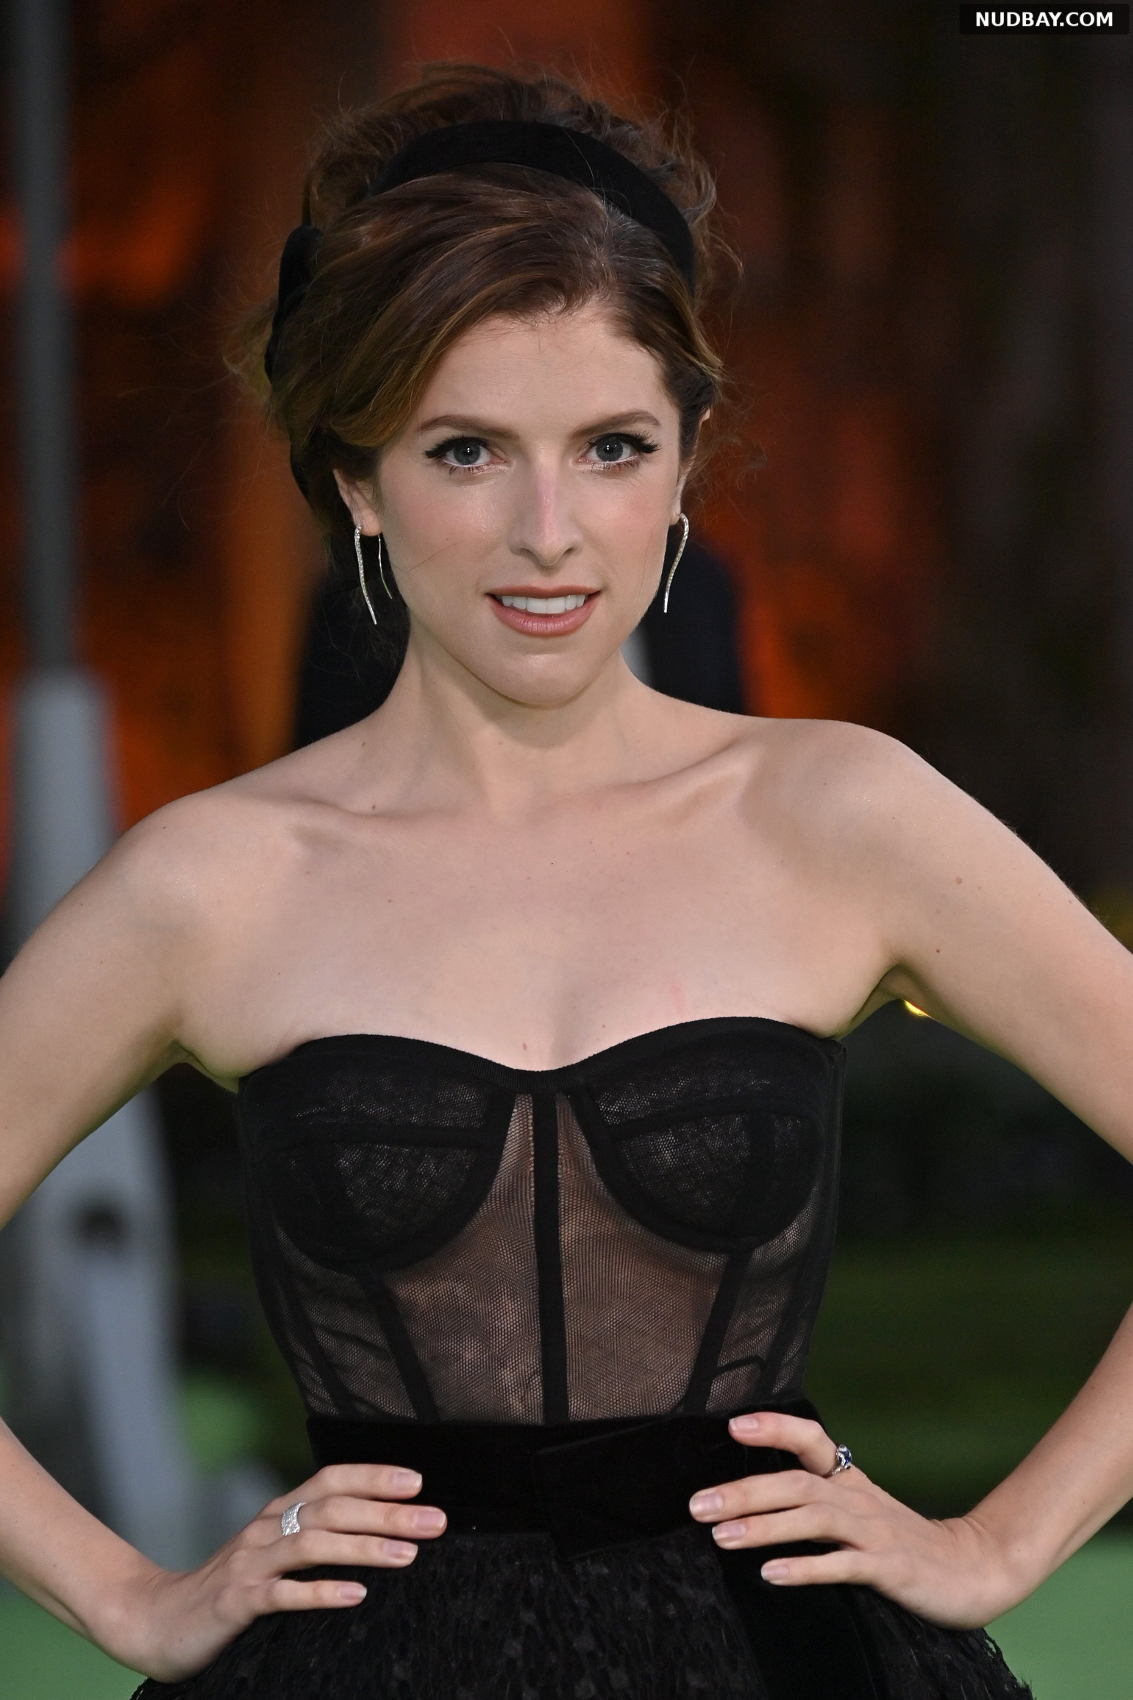 Anna Kendrick The Academy Museum of Motion Pictures Opening Gala in LA Sep 25 2021